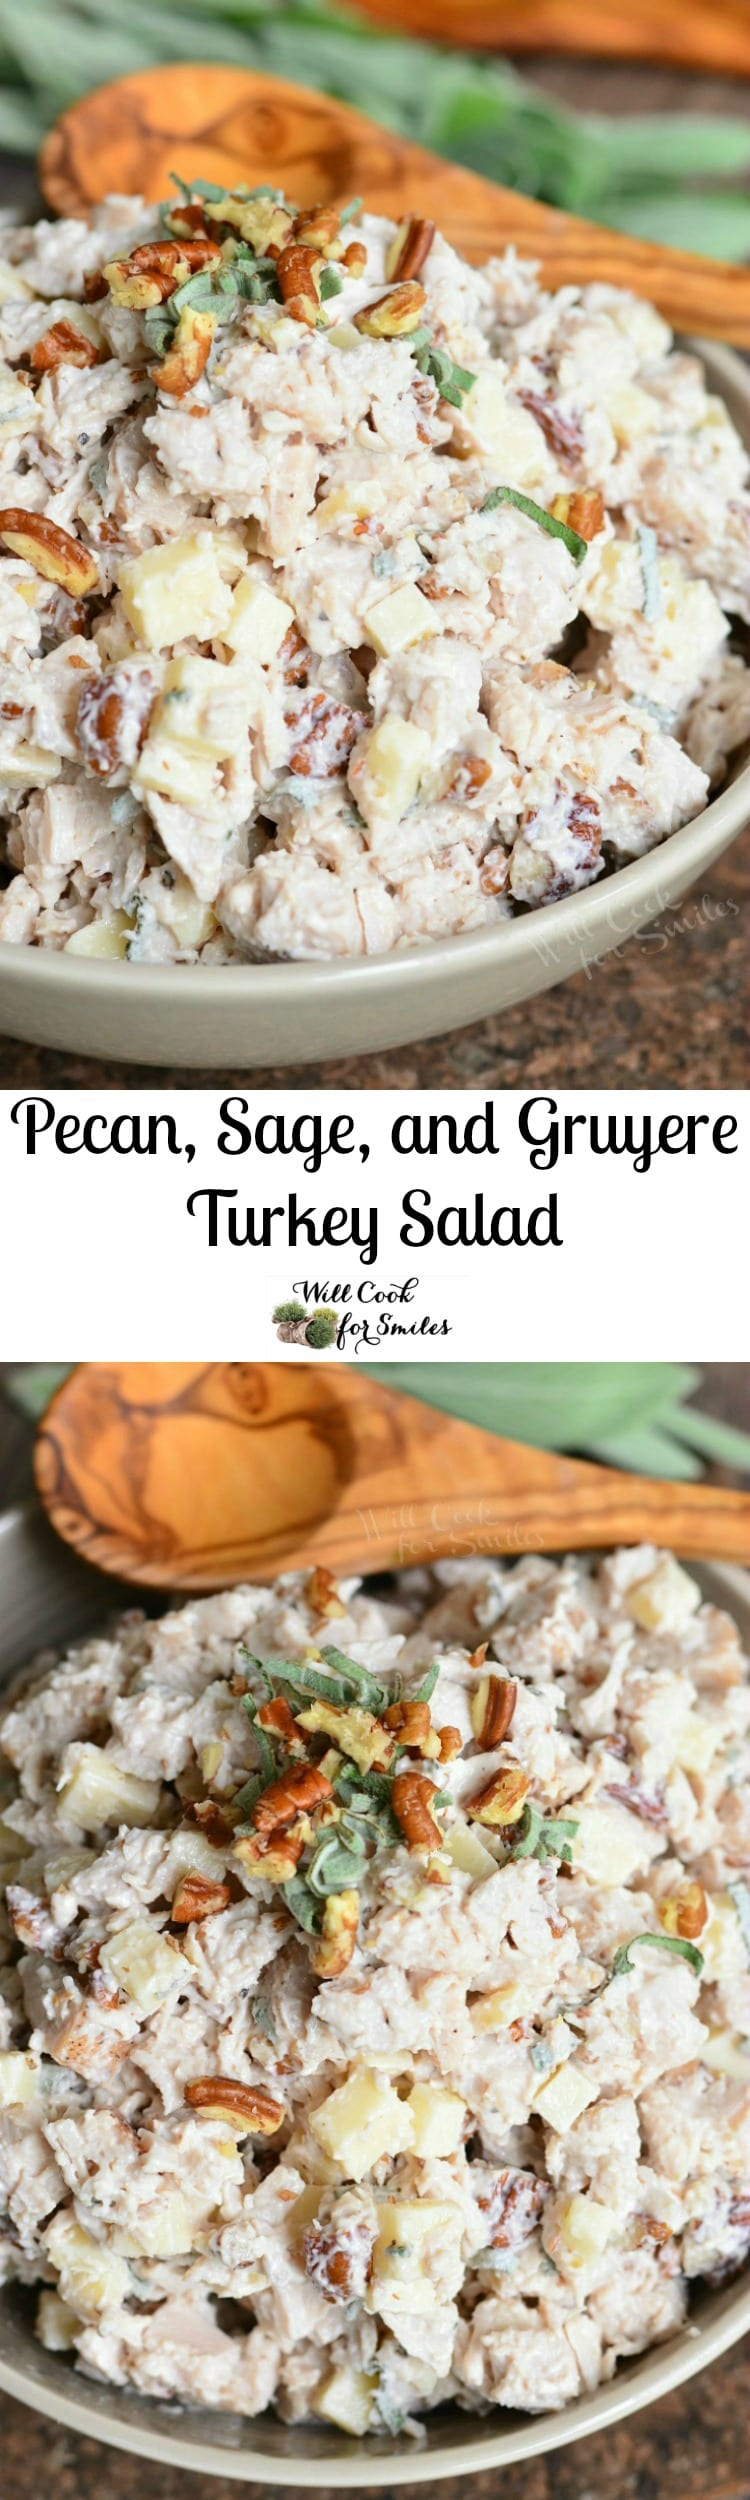 Pecan, Sage, and Gruyere Turkey Salad. Turkey salad is a delicious alternative to a chicken salad and a great way to use leftover turkey.